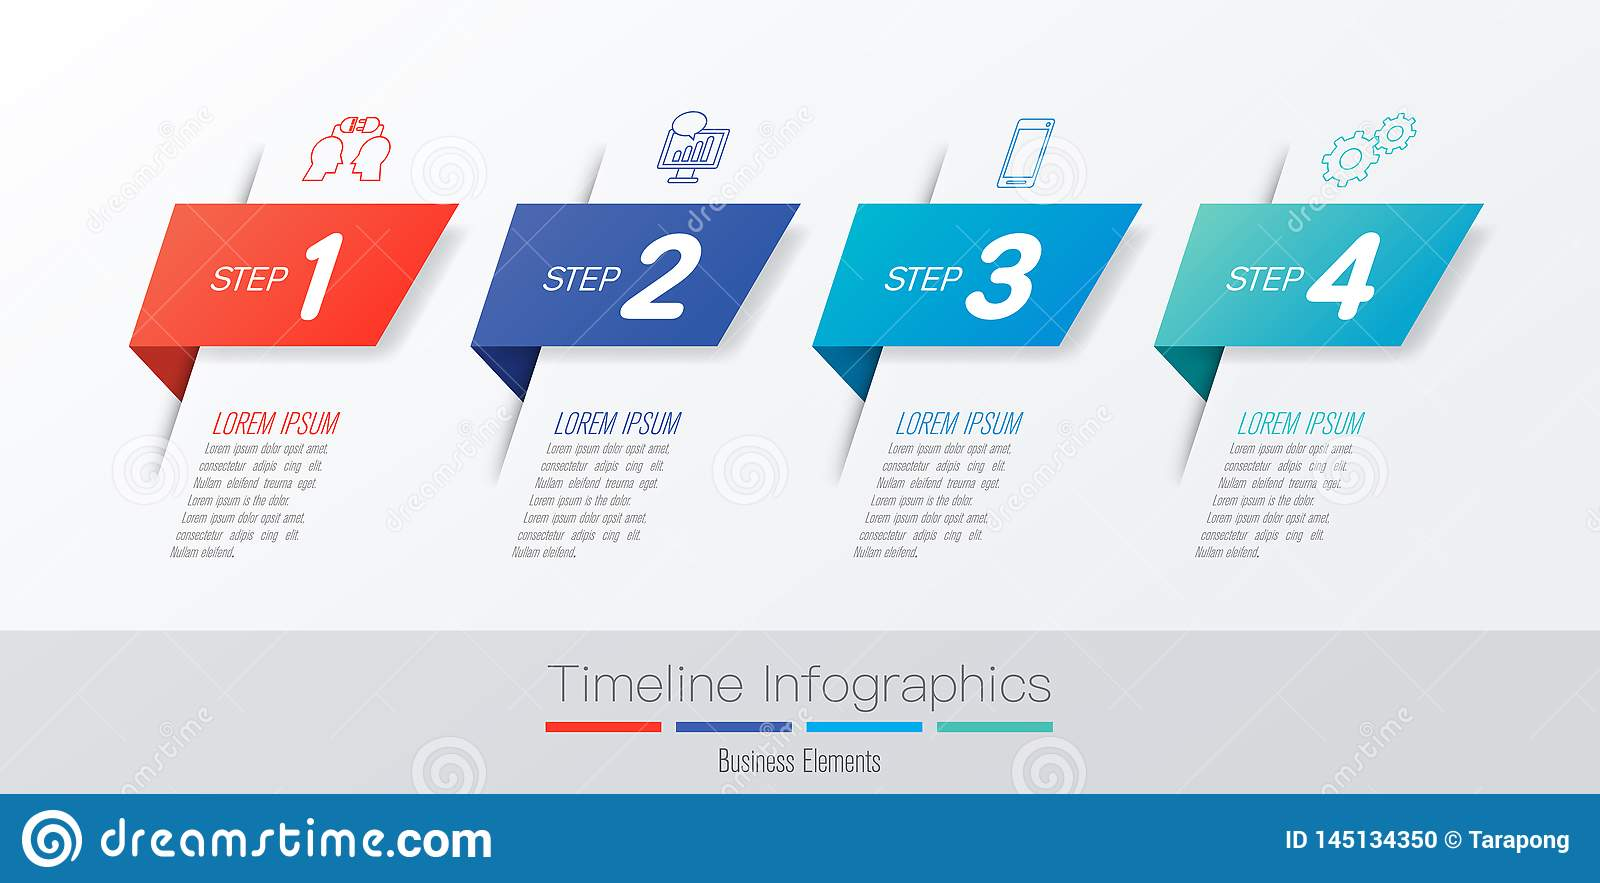 Timeline infographics design vector and marketing icons, Business concept with 4 options, steps or processes.